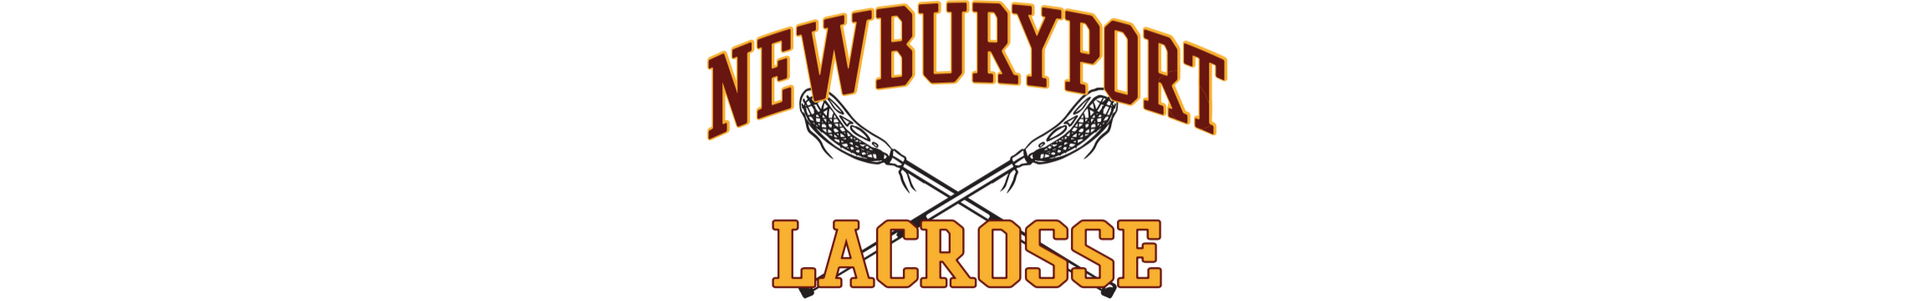 Newburyport Youth Lacrosse, Lacrosse, Goal, Field